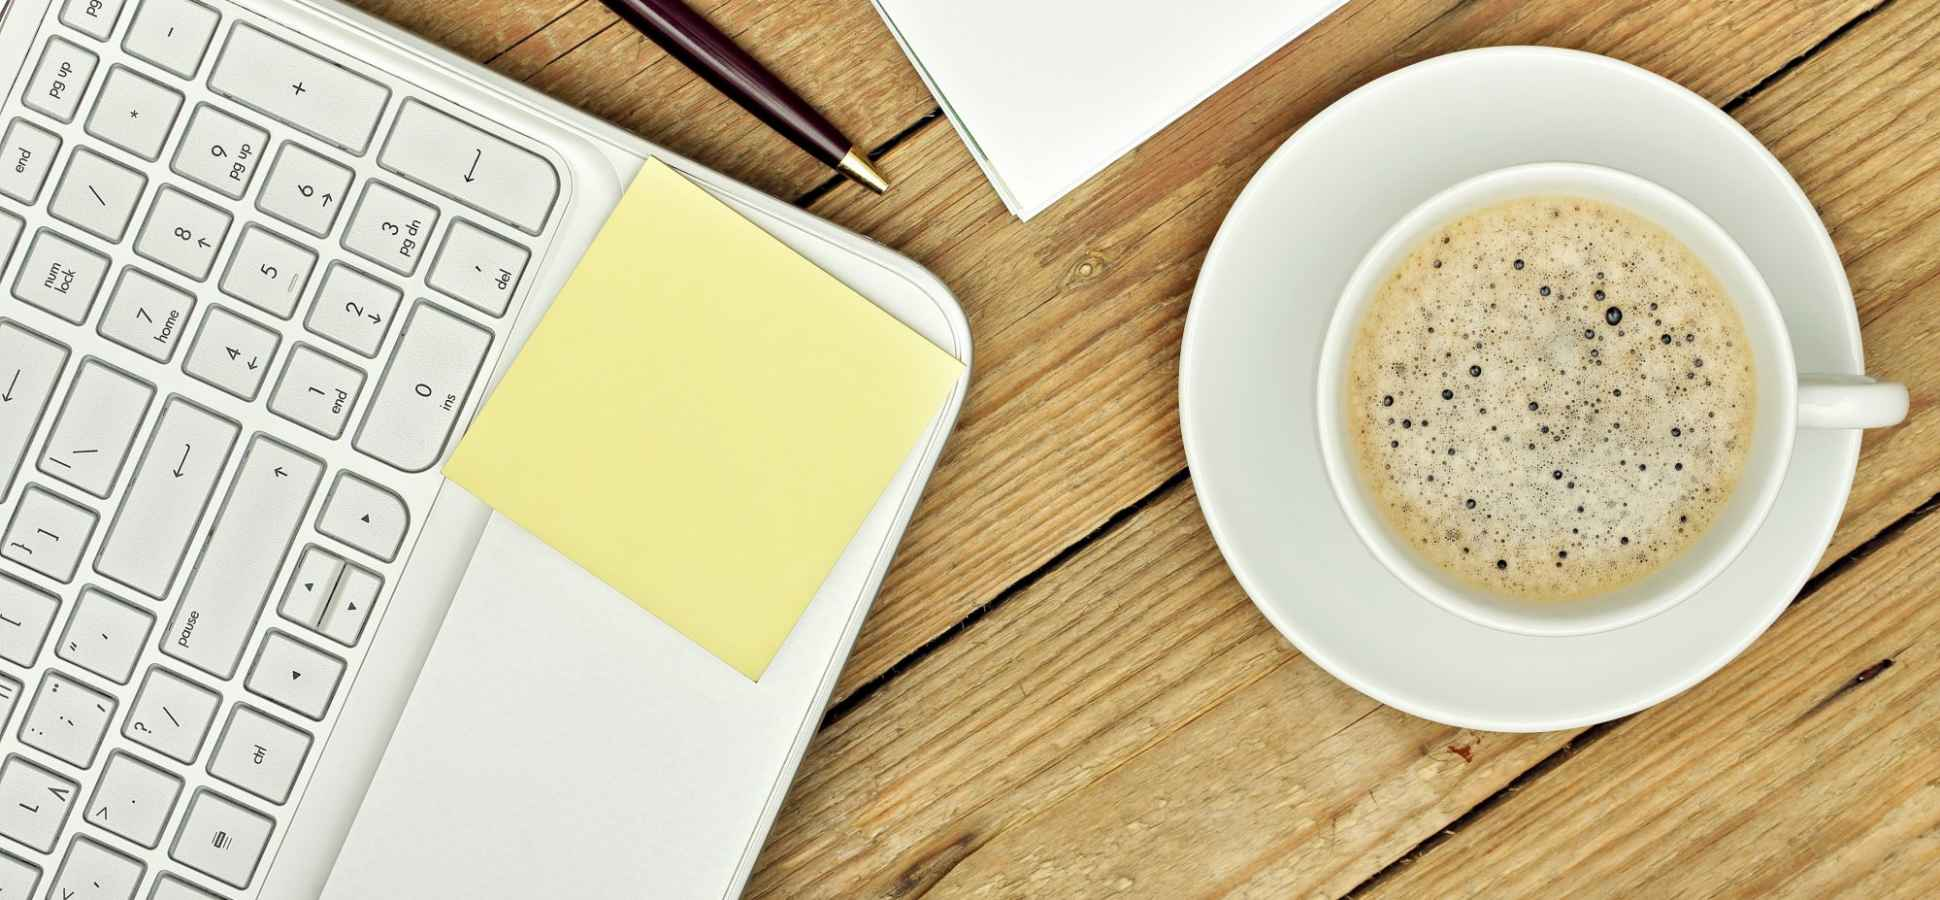 7 Powerful Morning Routines of Insanely Productive People